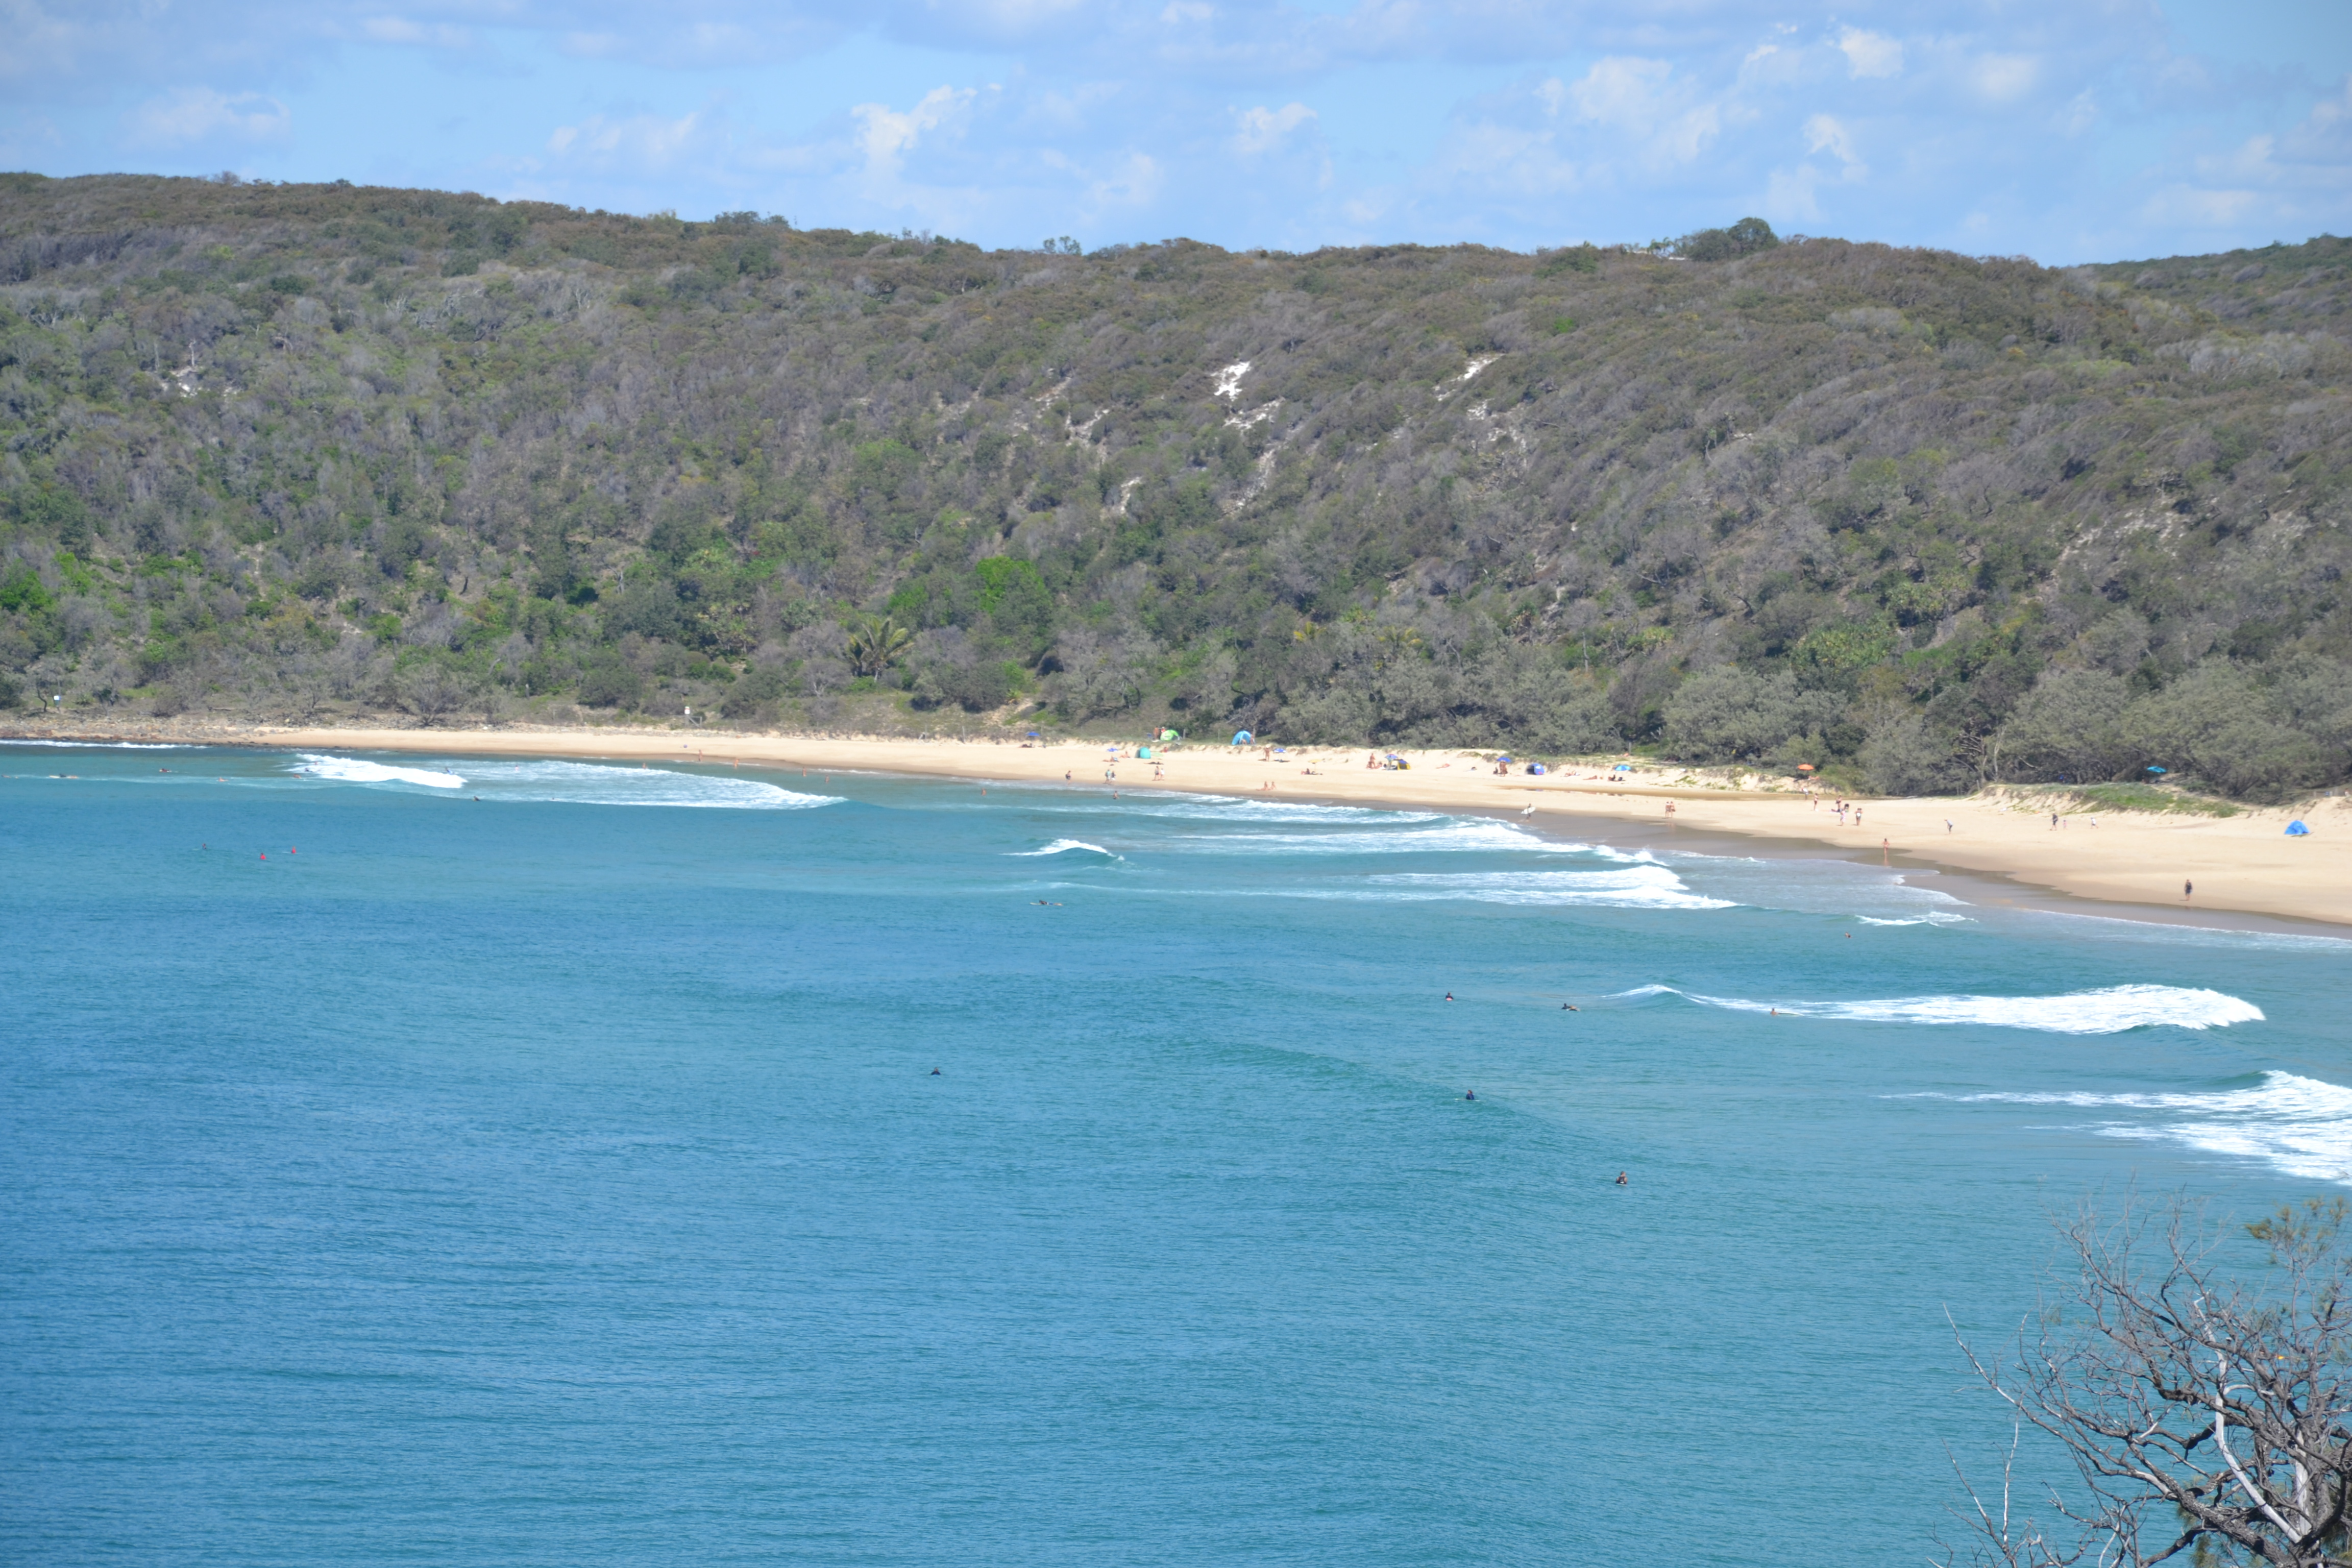 Nudist resorts wide bay queensland australia